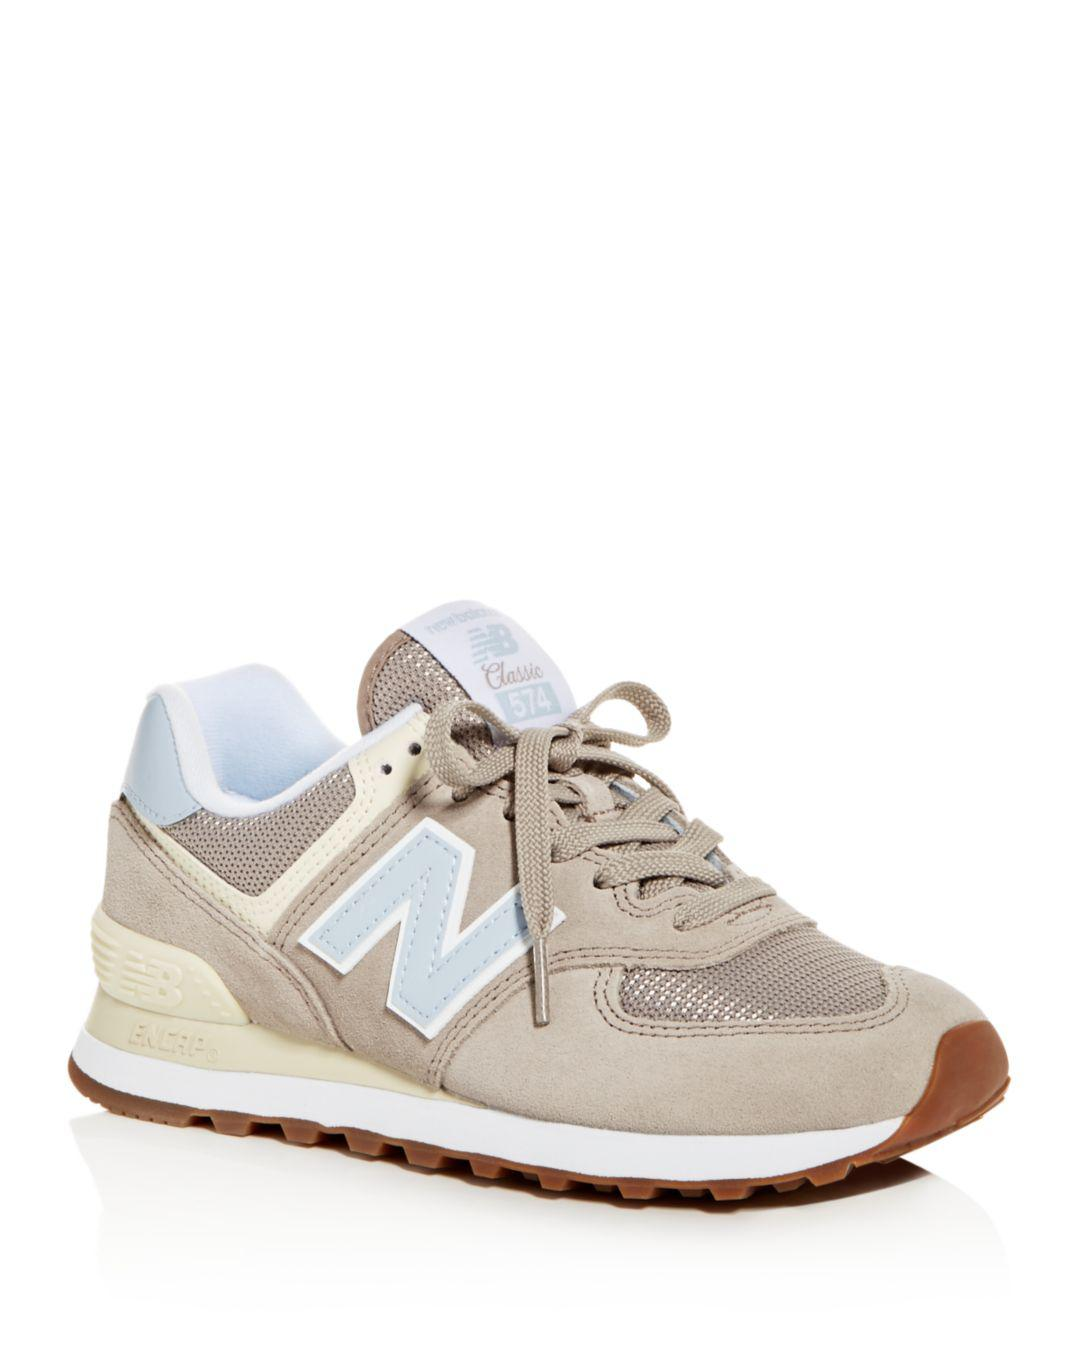 check out db6c0 842f0 New Balance Women s Classic 574 Summer Dusk Nubuck Leather Lace Up ...